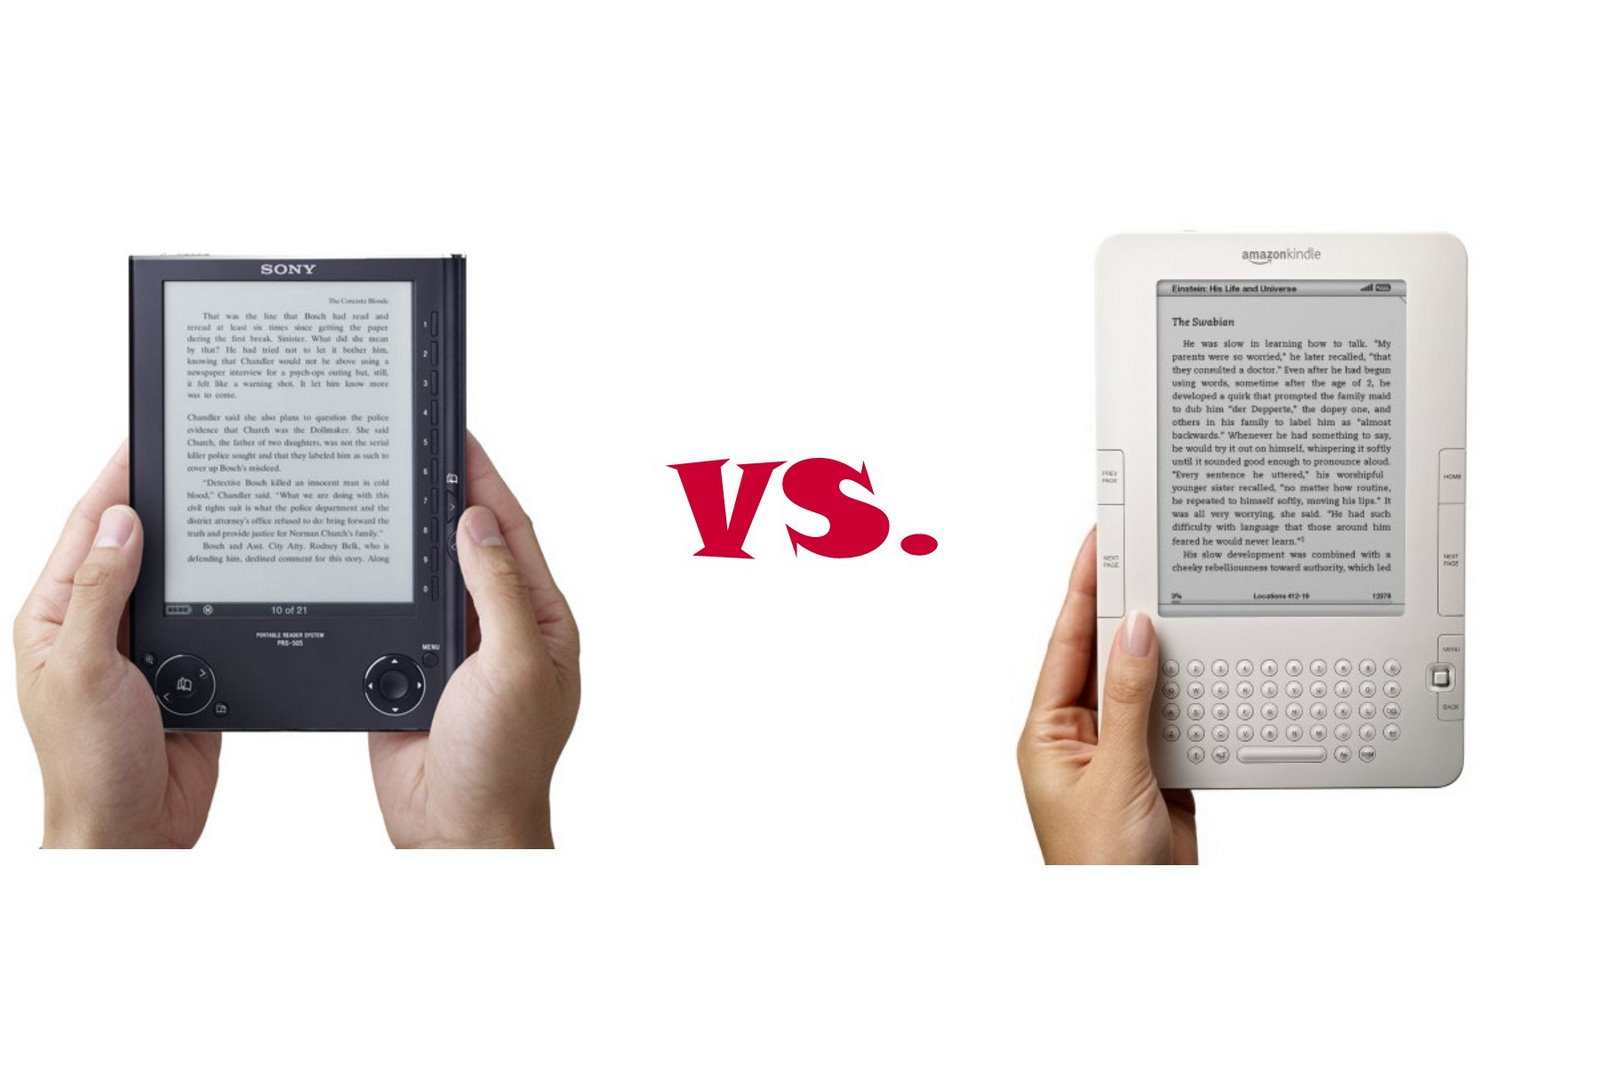 Kindle vs. Sony Reader--Your Thoughts?